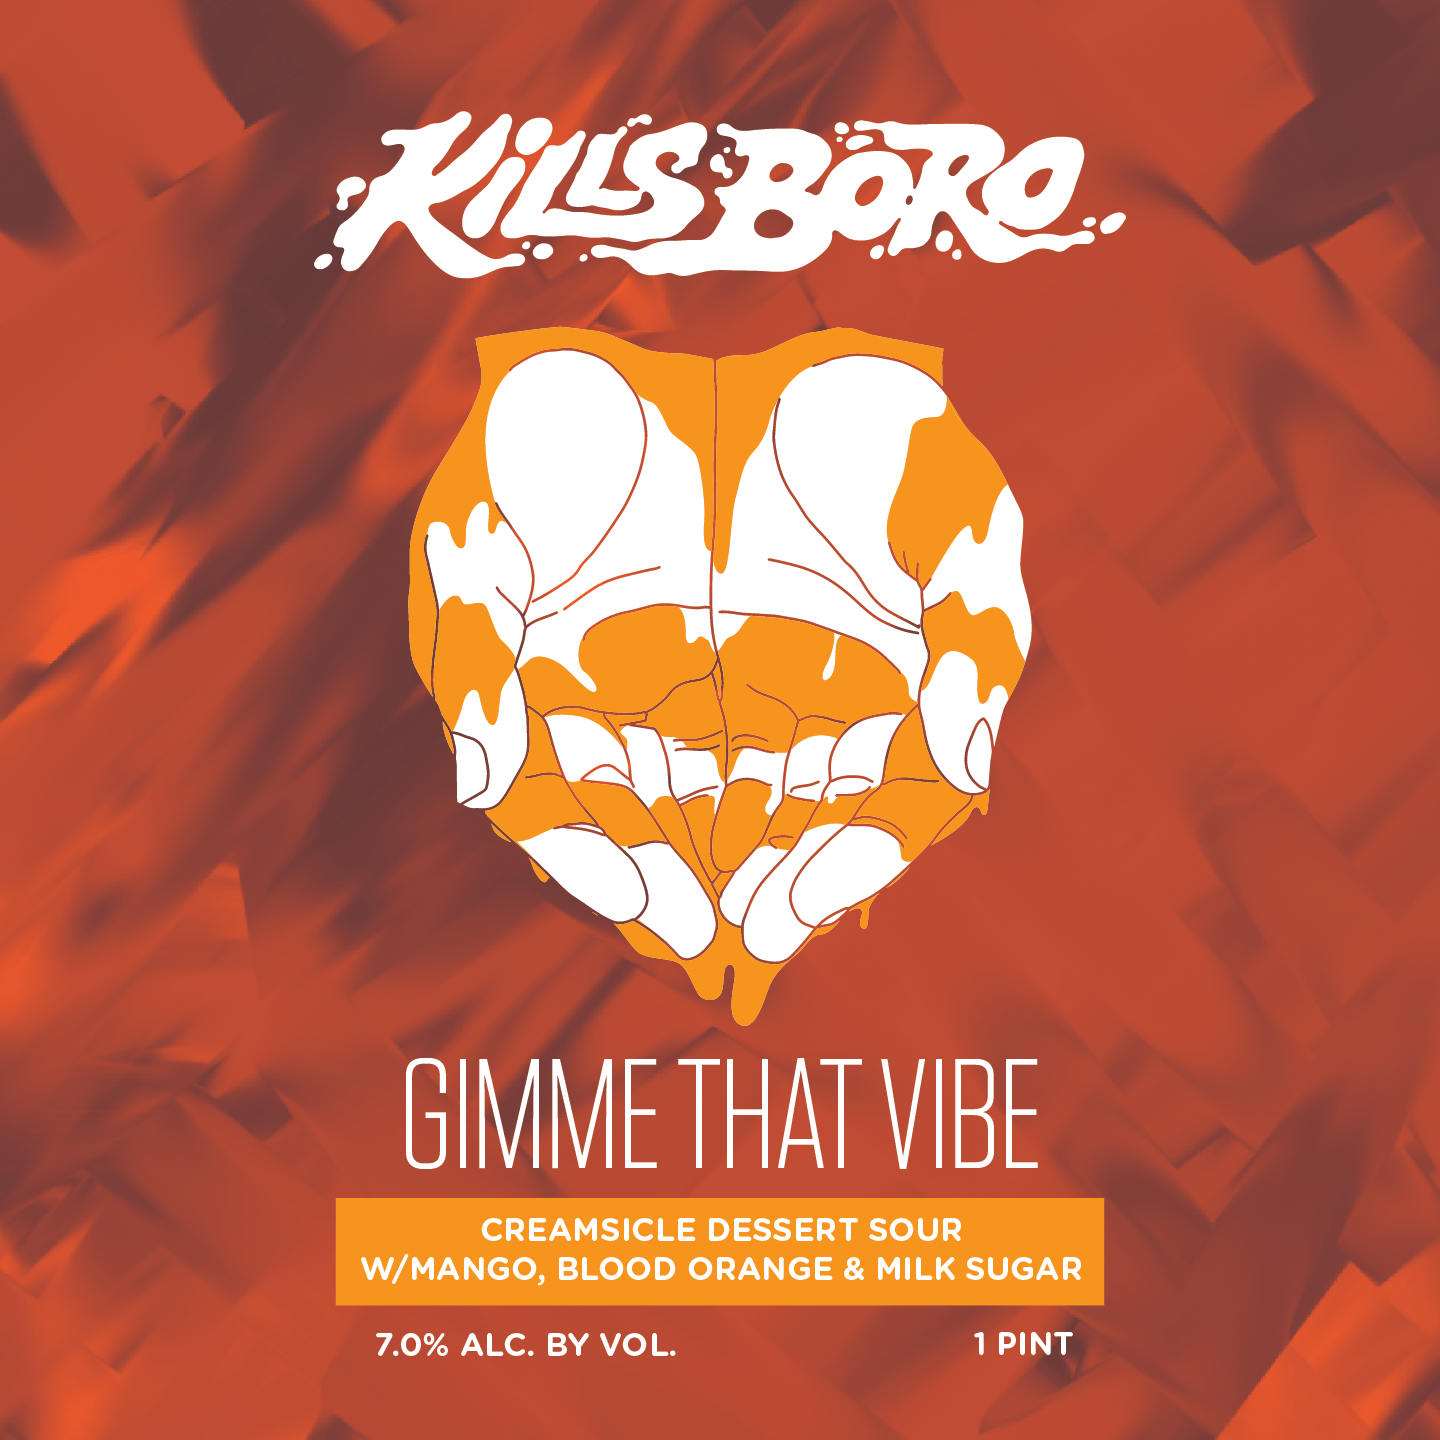 Kills Boro Gimme That Vibe beer Label Full Size